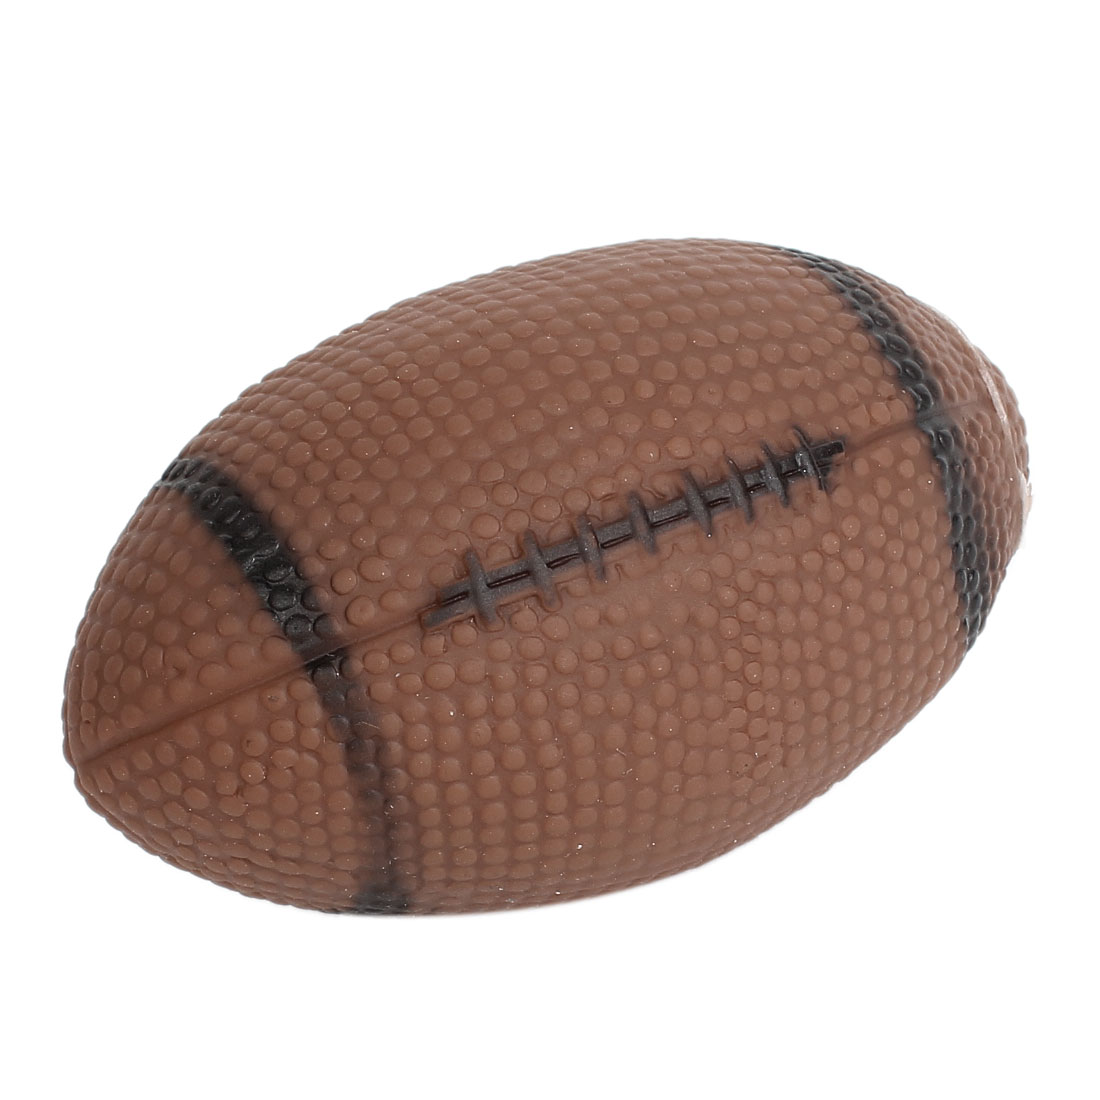 Rugby Ball Design Pet Dog Puppy Playing Soundable Squeeze Chew Toy Chocolate Color